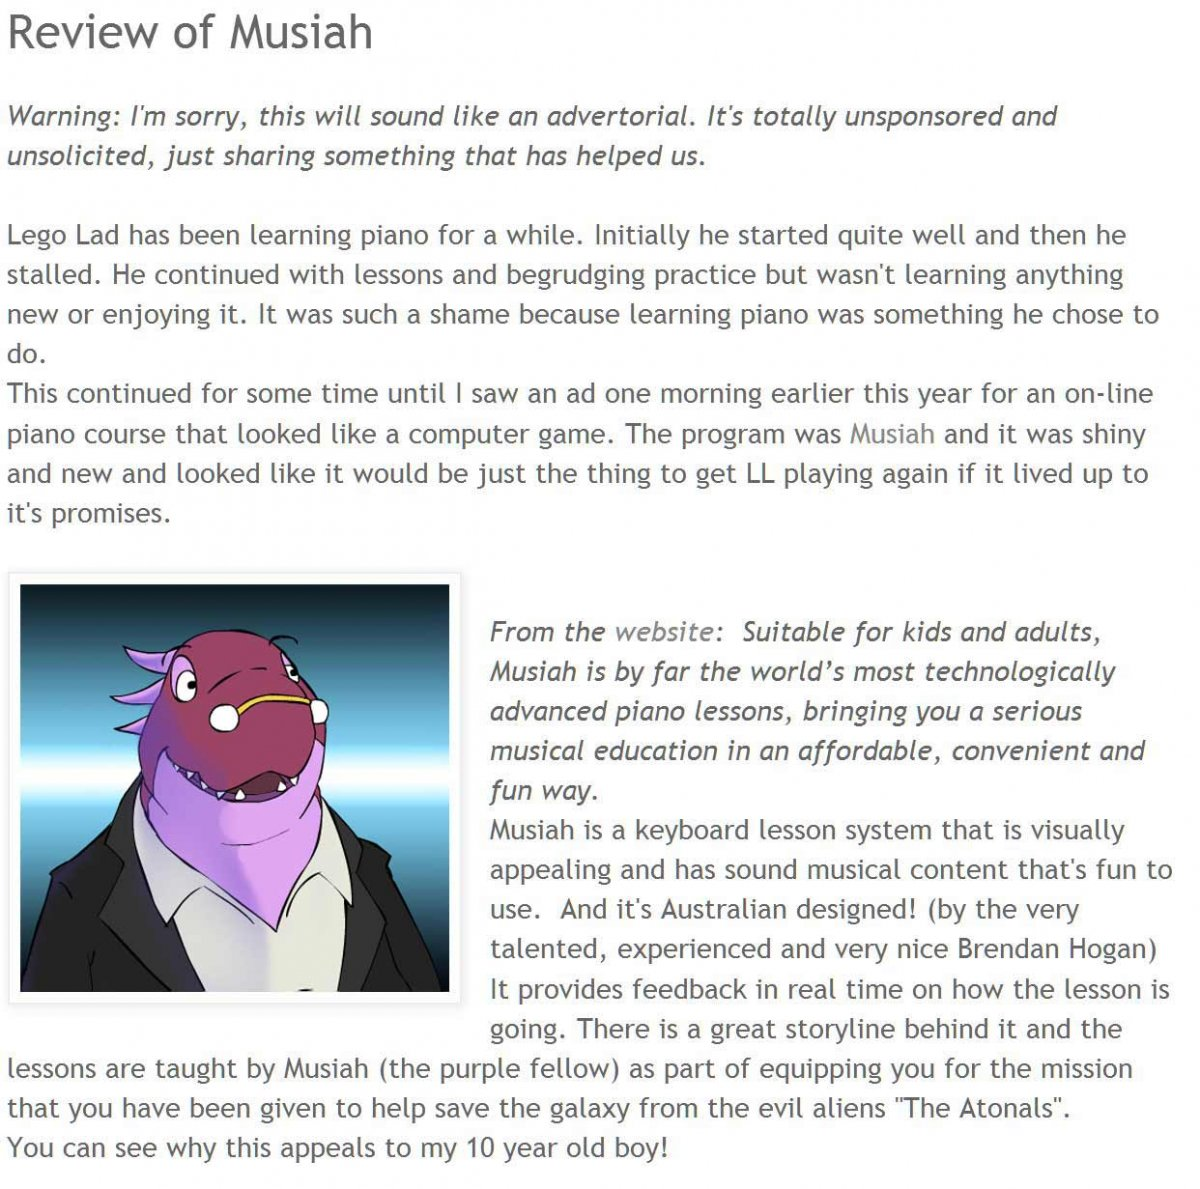 External blog reviews Musiah piano lessons